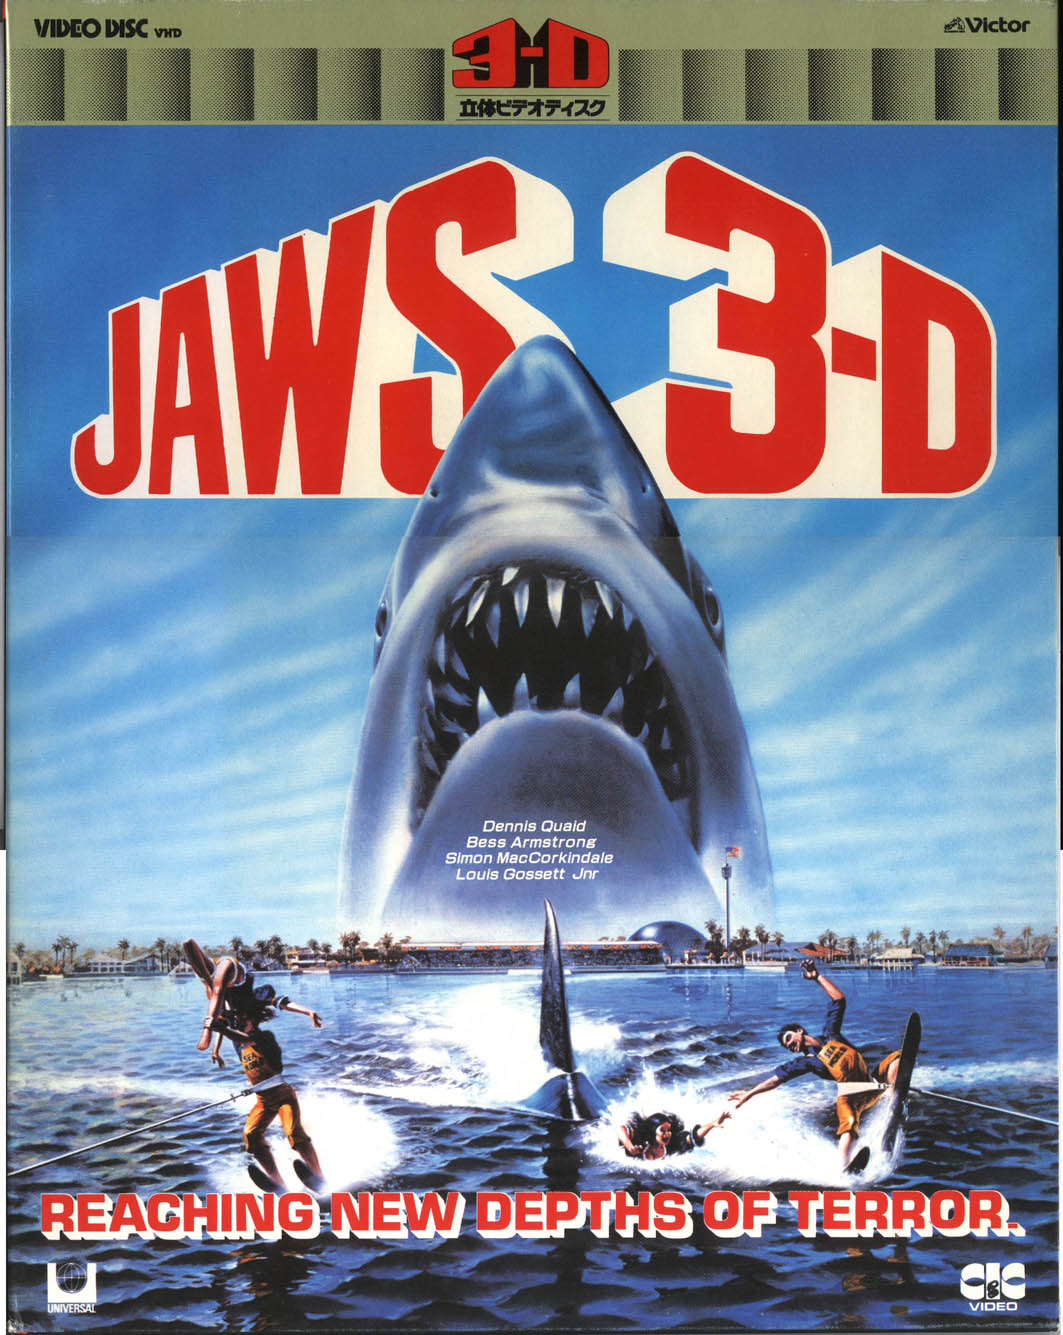 Jaws 3D: Widescreen, 2-discs, 4-sides, Dolby Surround